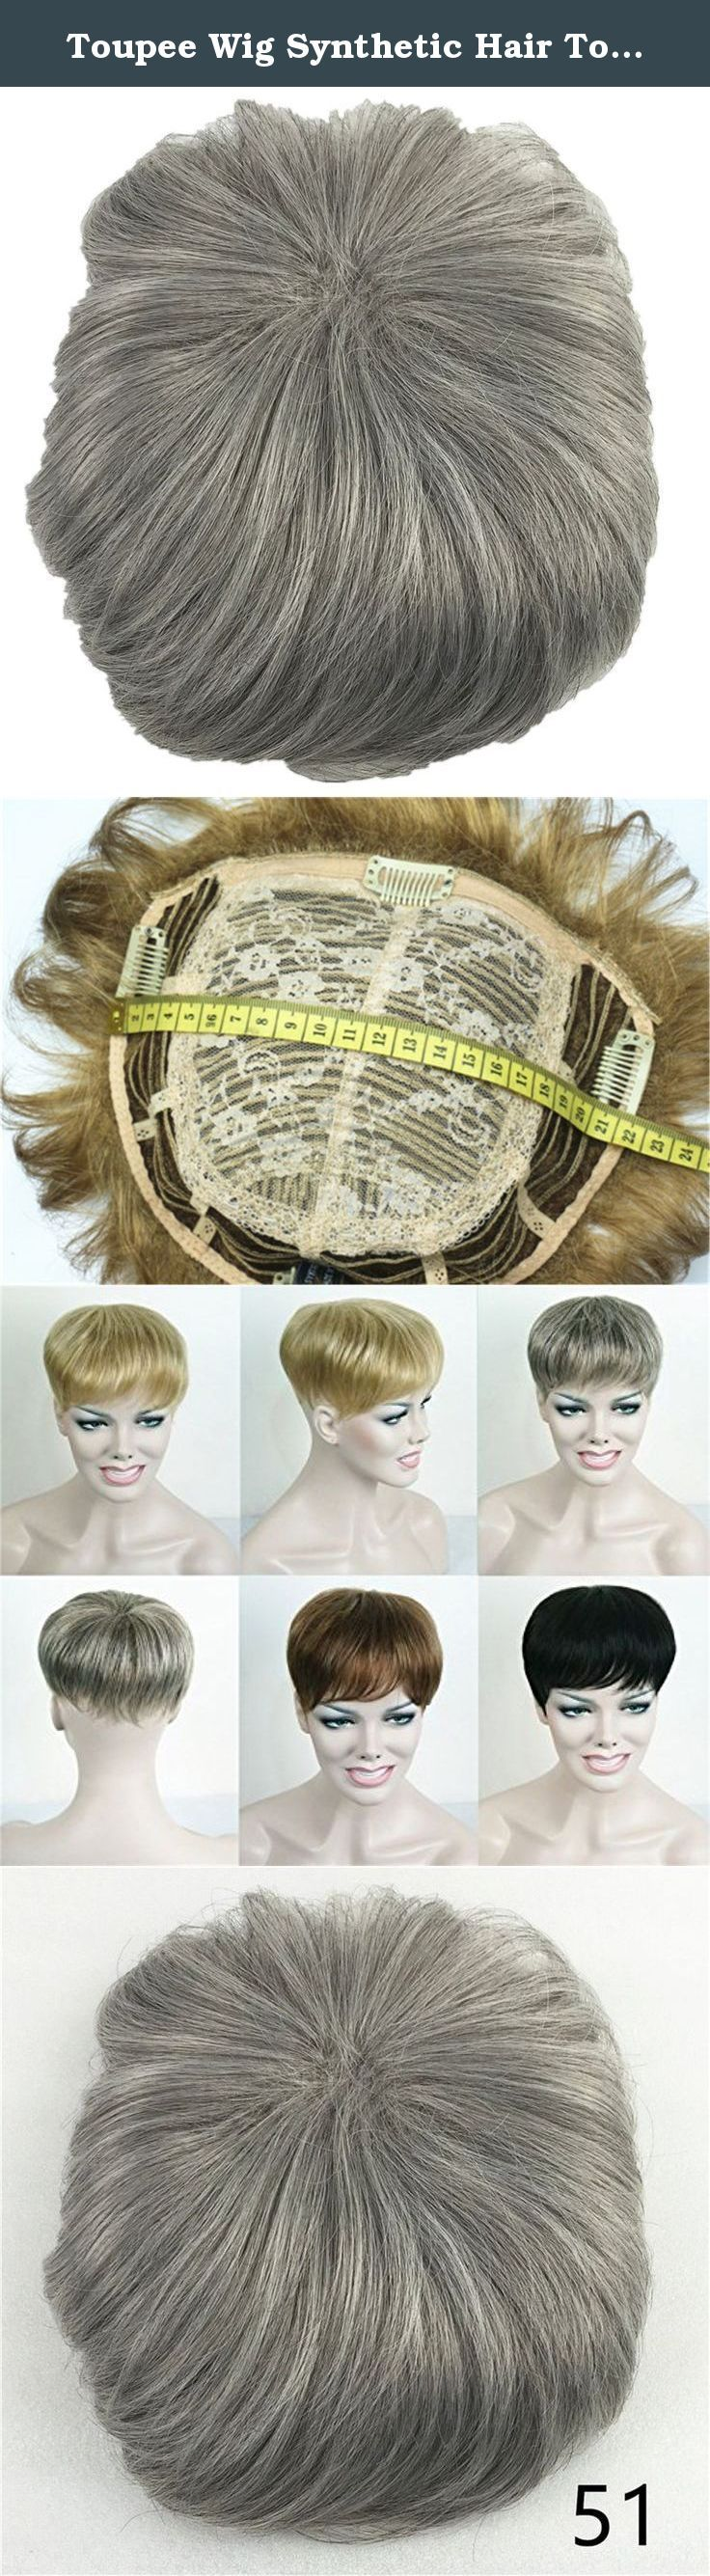 Toupee Wig Synthetic Hair Toupees Hair Loss Top Piece Wigs (51# Grey Mix). Condition: All wigs are brand new and never been worn . Material: All wigs is Man- Made with high quality Japanese Monofilament top and Kanekalon Fiberand which grew the synthetic fiber in human hair way which made the hair as human hair. But the material is synthetic fiber. Features : 1.All wigs are hand made by professional skill workers! 2.There is a lightest netting cap which is able to adjust most people`s…